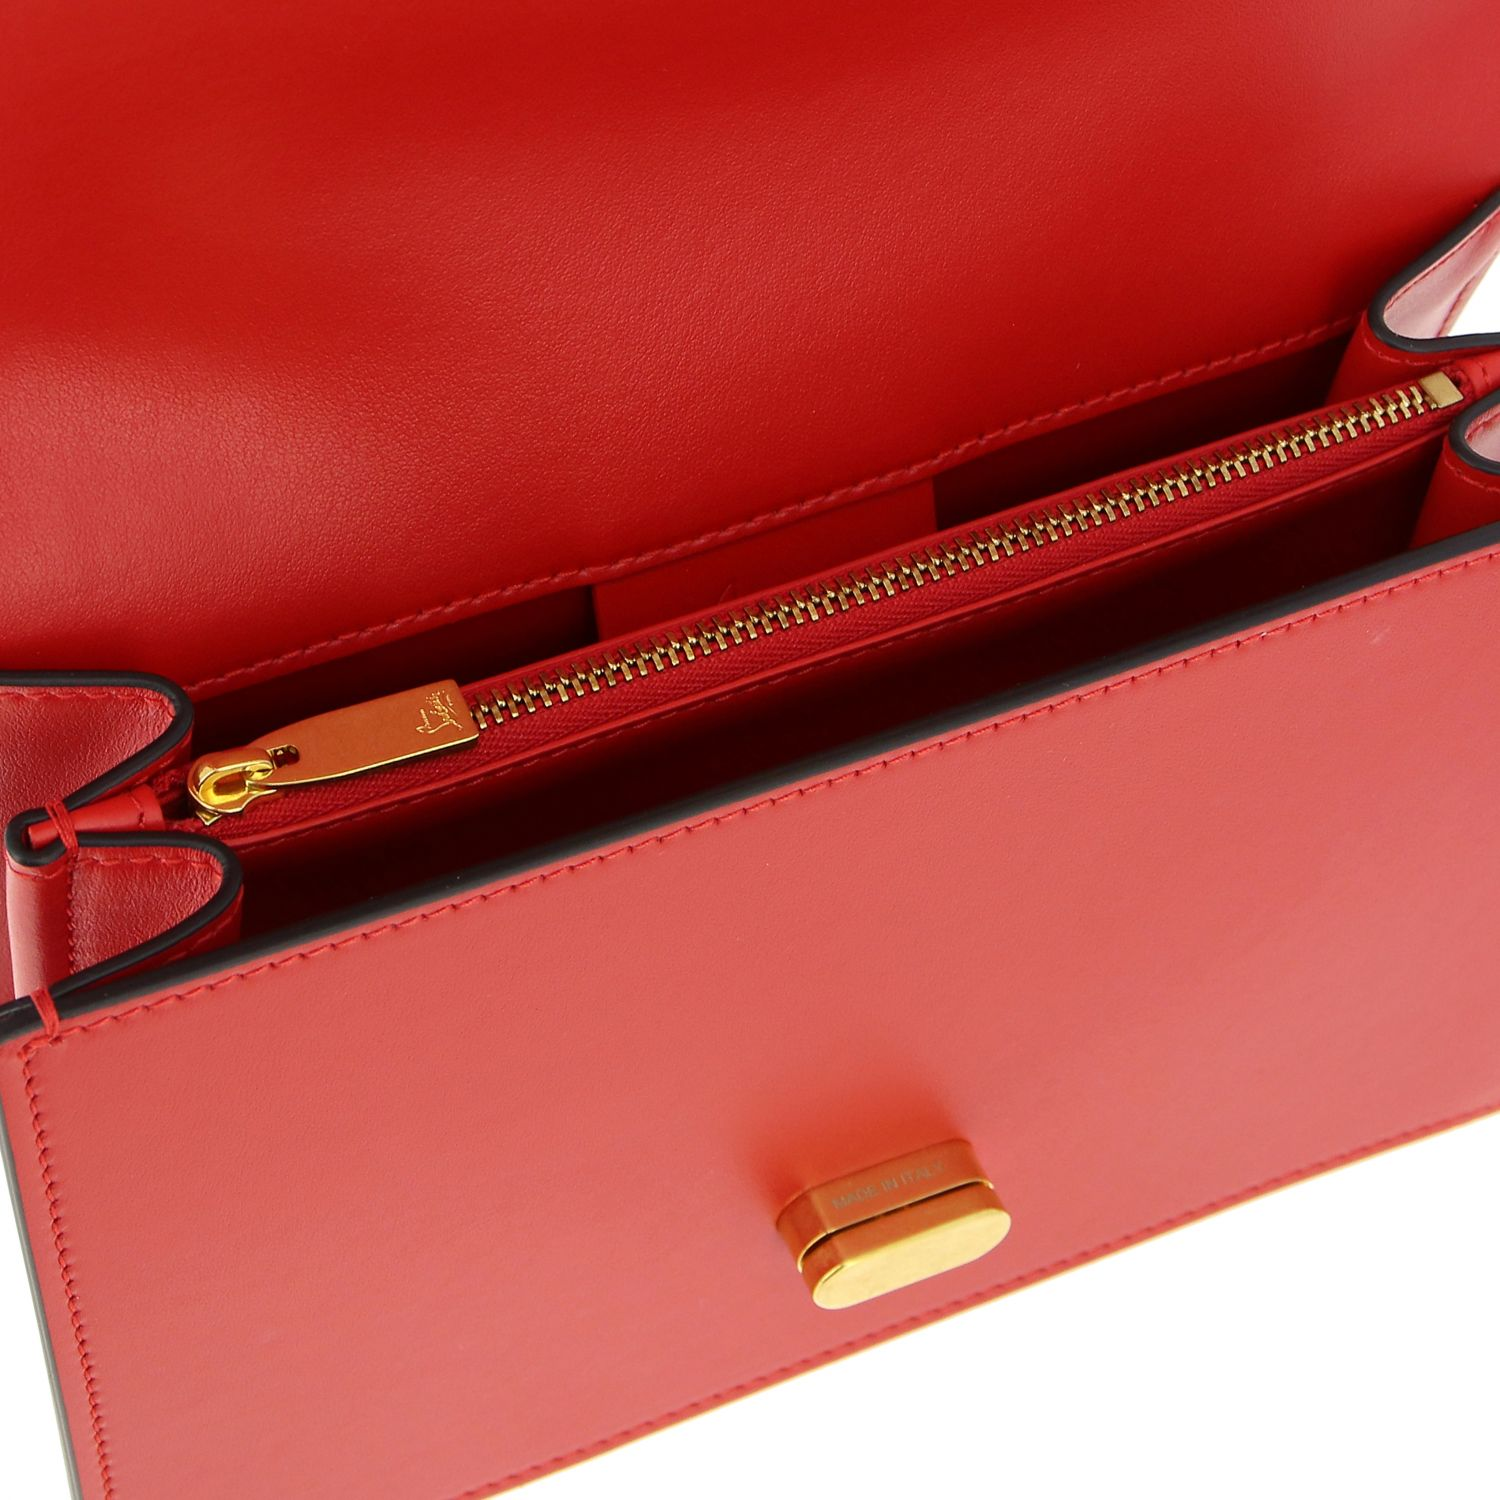 Elisa Christian Louboutin leather bag red 5